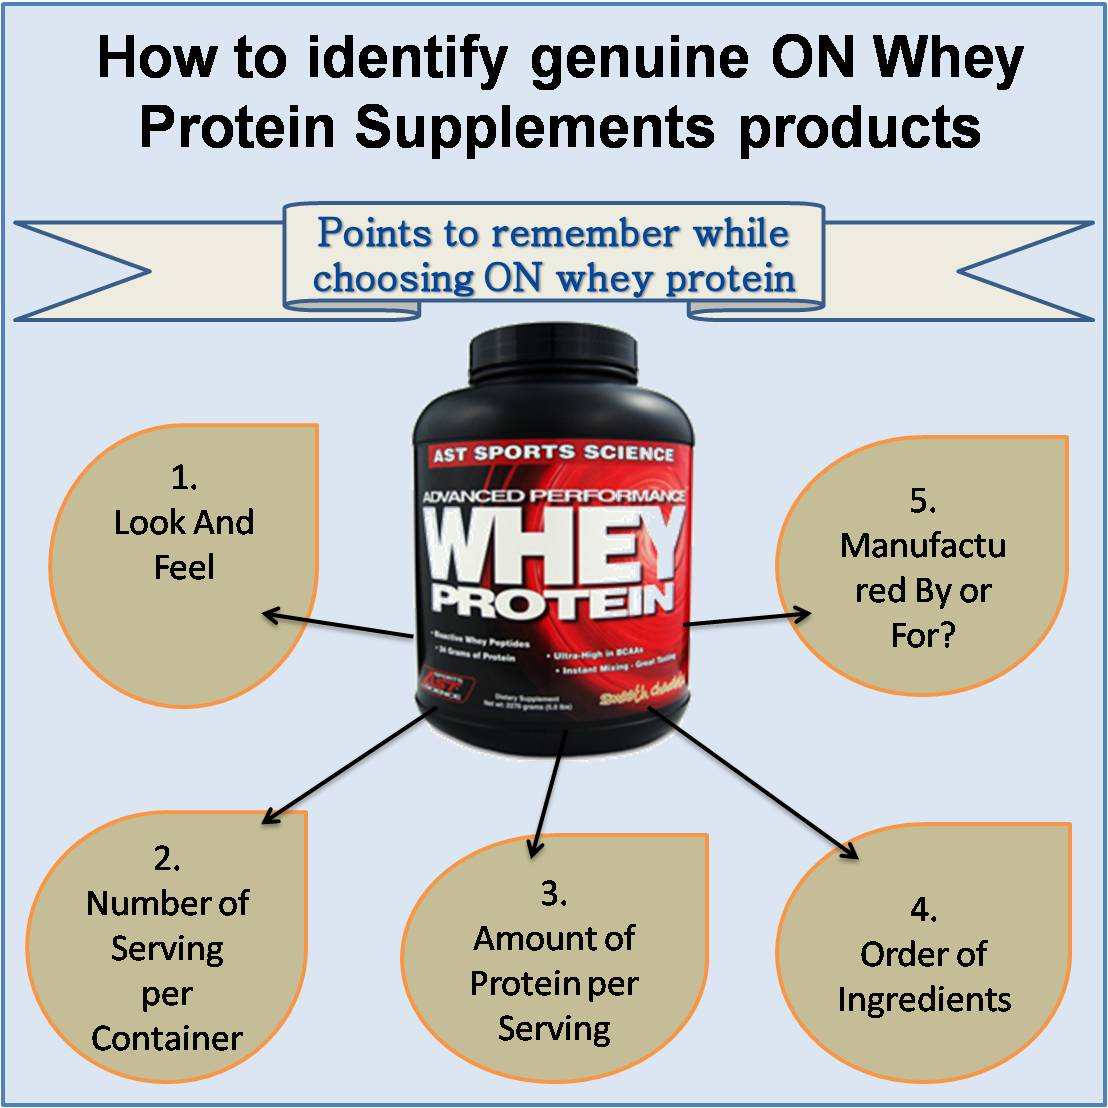 How to identify genuine ON Whey